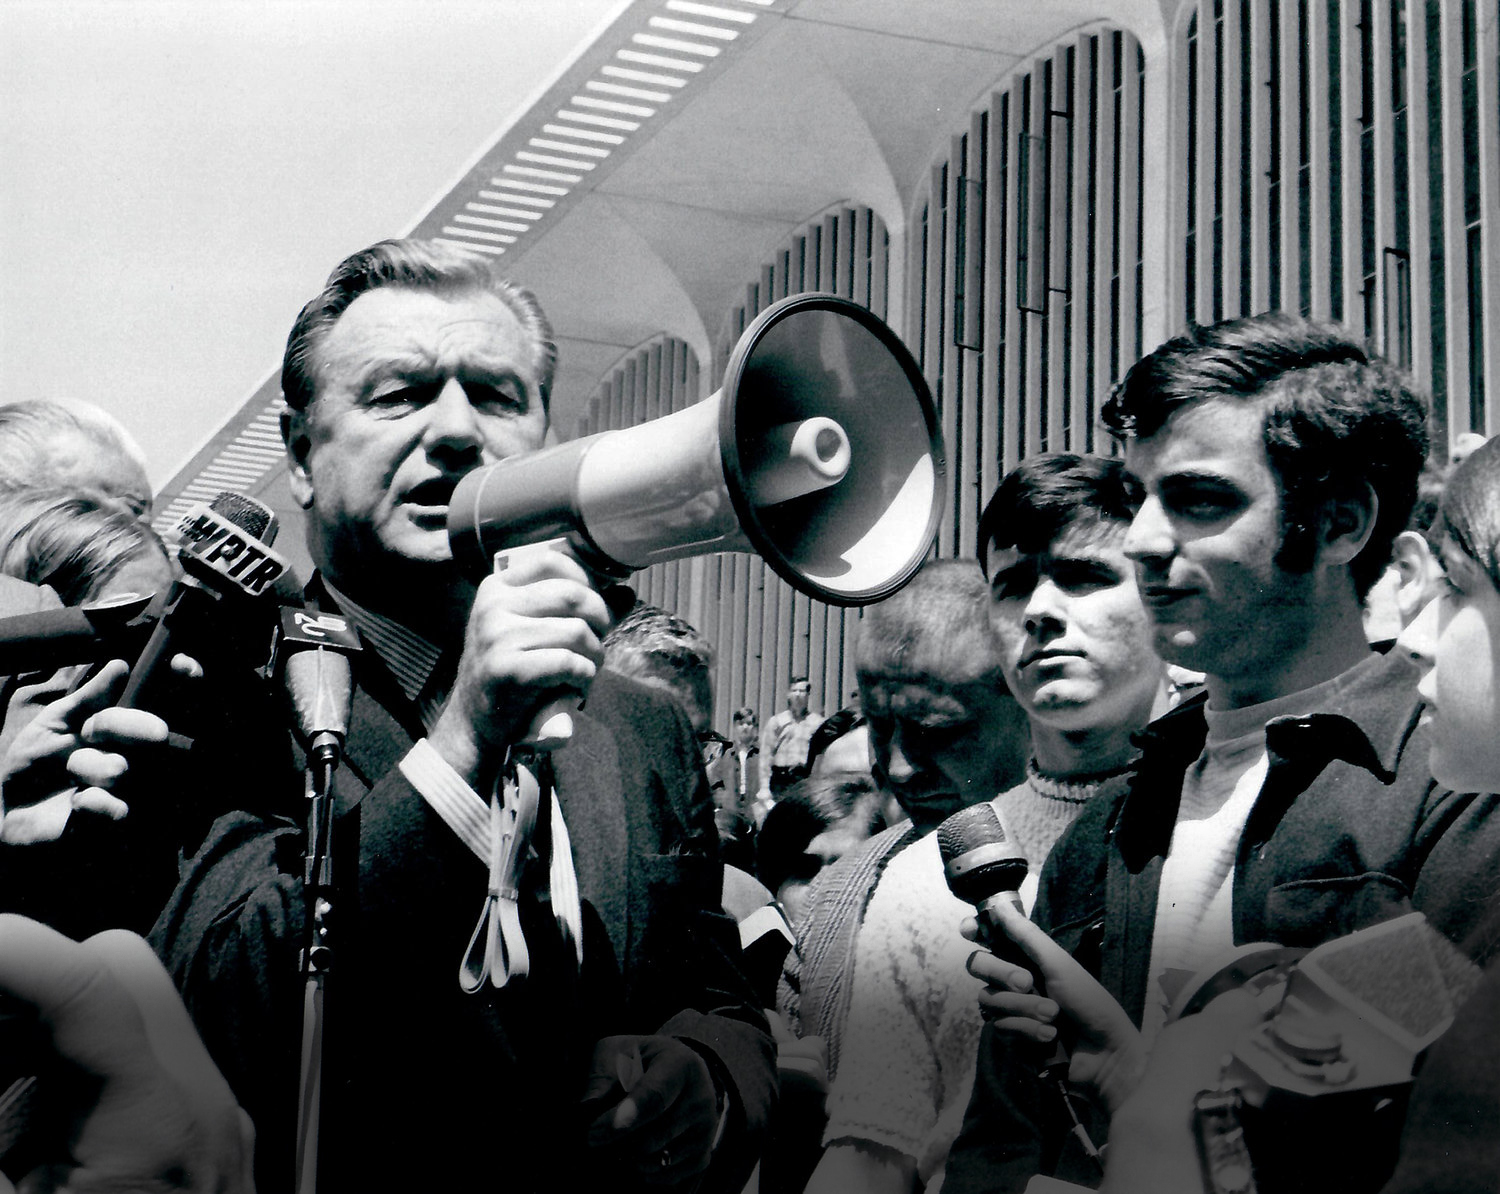 Catherine Bertini and William Brydges organized a rally at SUNY Albany where 2000 students showed up with 12 hours notice, two weeks after the Governor announced his presidential candidacy (1968)